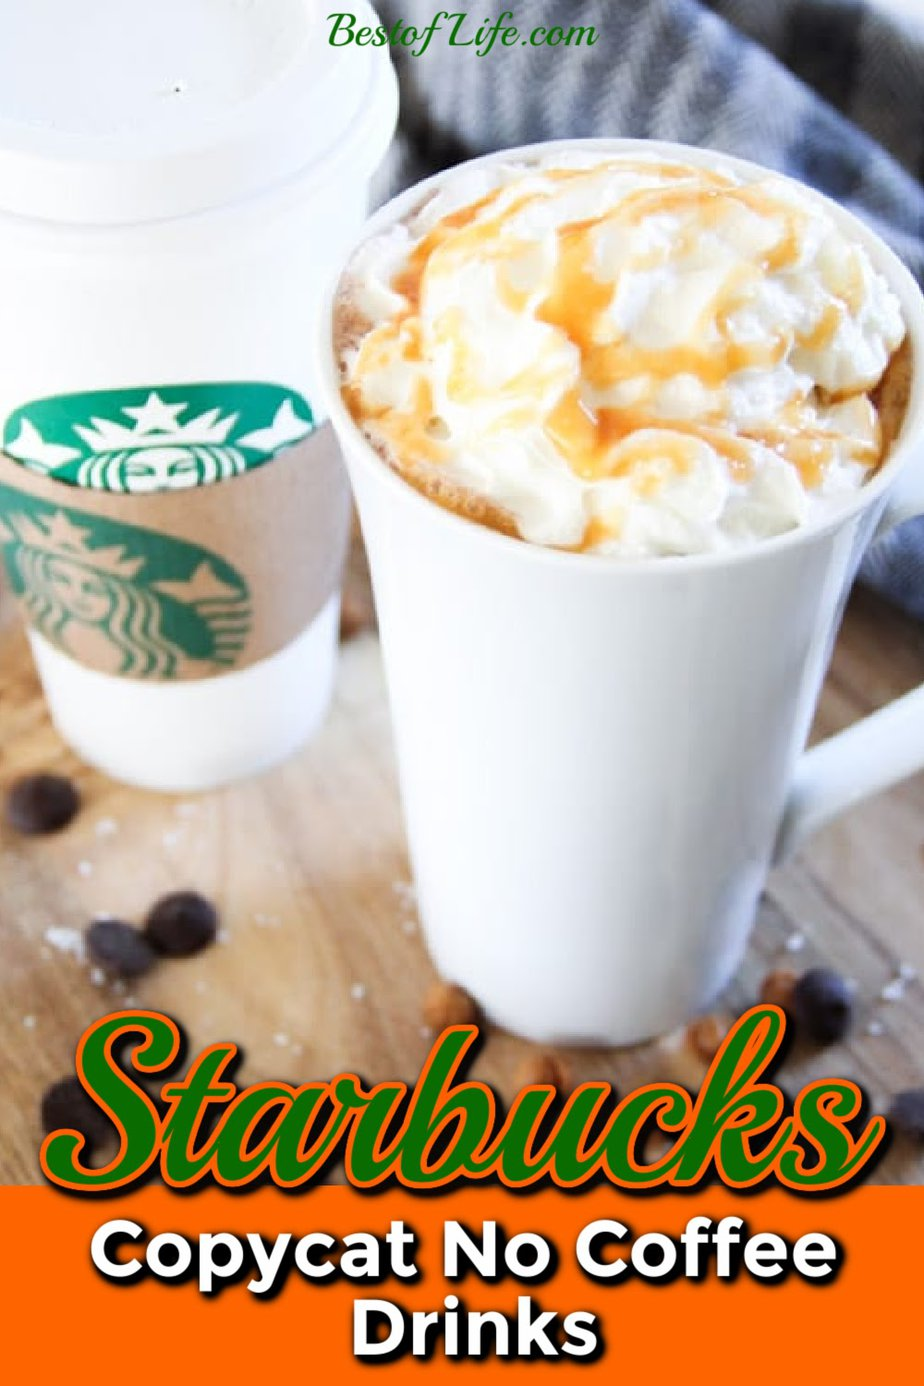 Making Starbucks no coffee copycat drink recipes are easier than you may think and can save you a lot of time since there is no line at home. Starbucks Drink Recipes | Starbucks Recipes at Home | Copycat Starbucks Recipes | Starbucks Drinks Without Coffee | No Coffee Starbucks Drinks | Fruity Starbucks Drinks #starbucks #recipes via @thebestoflife